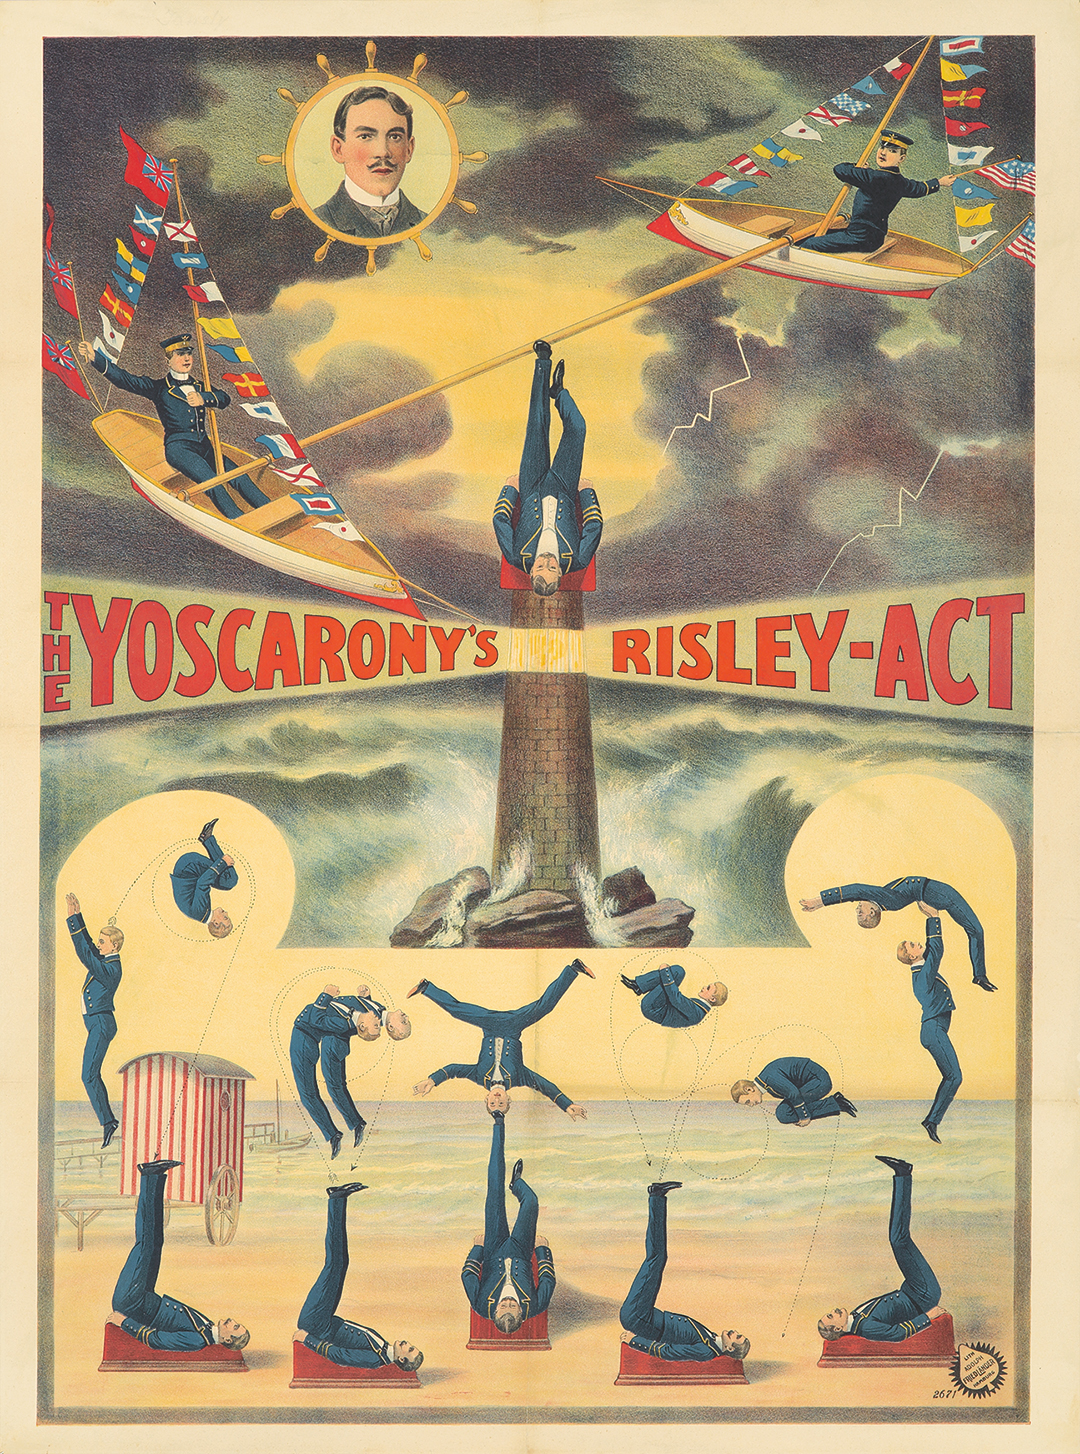 132. The Yoscarony's Risley Act. 1903.